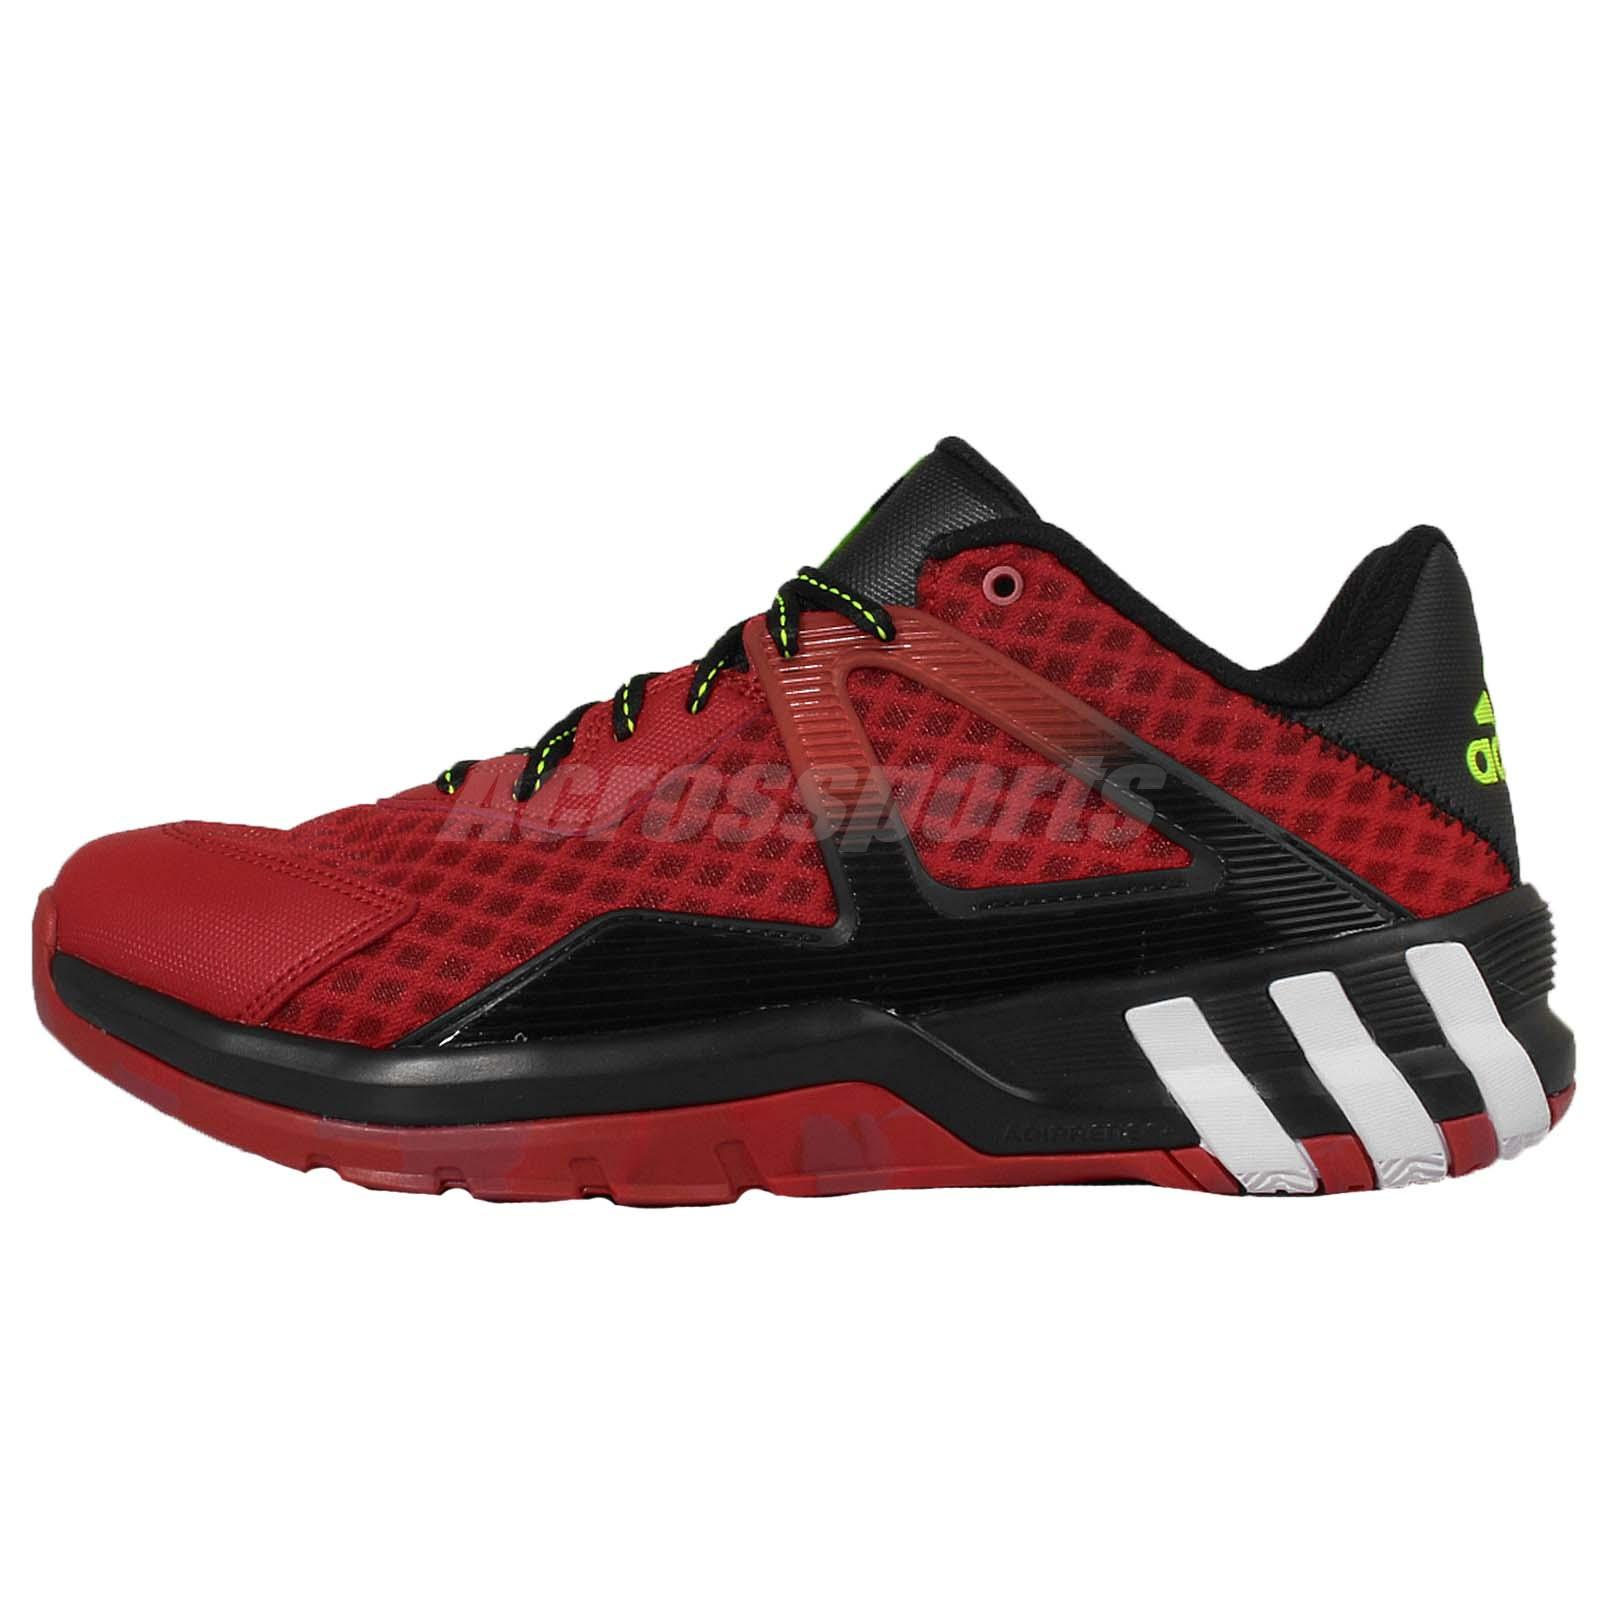 Red. Style: Basketball Shoes